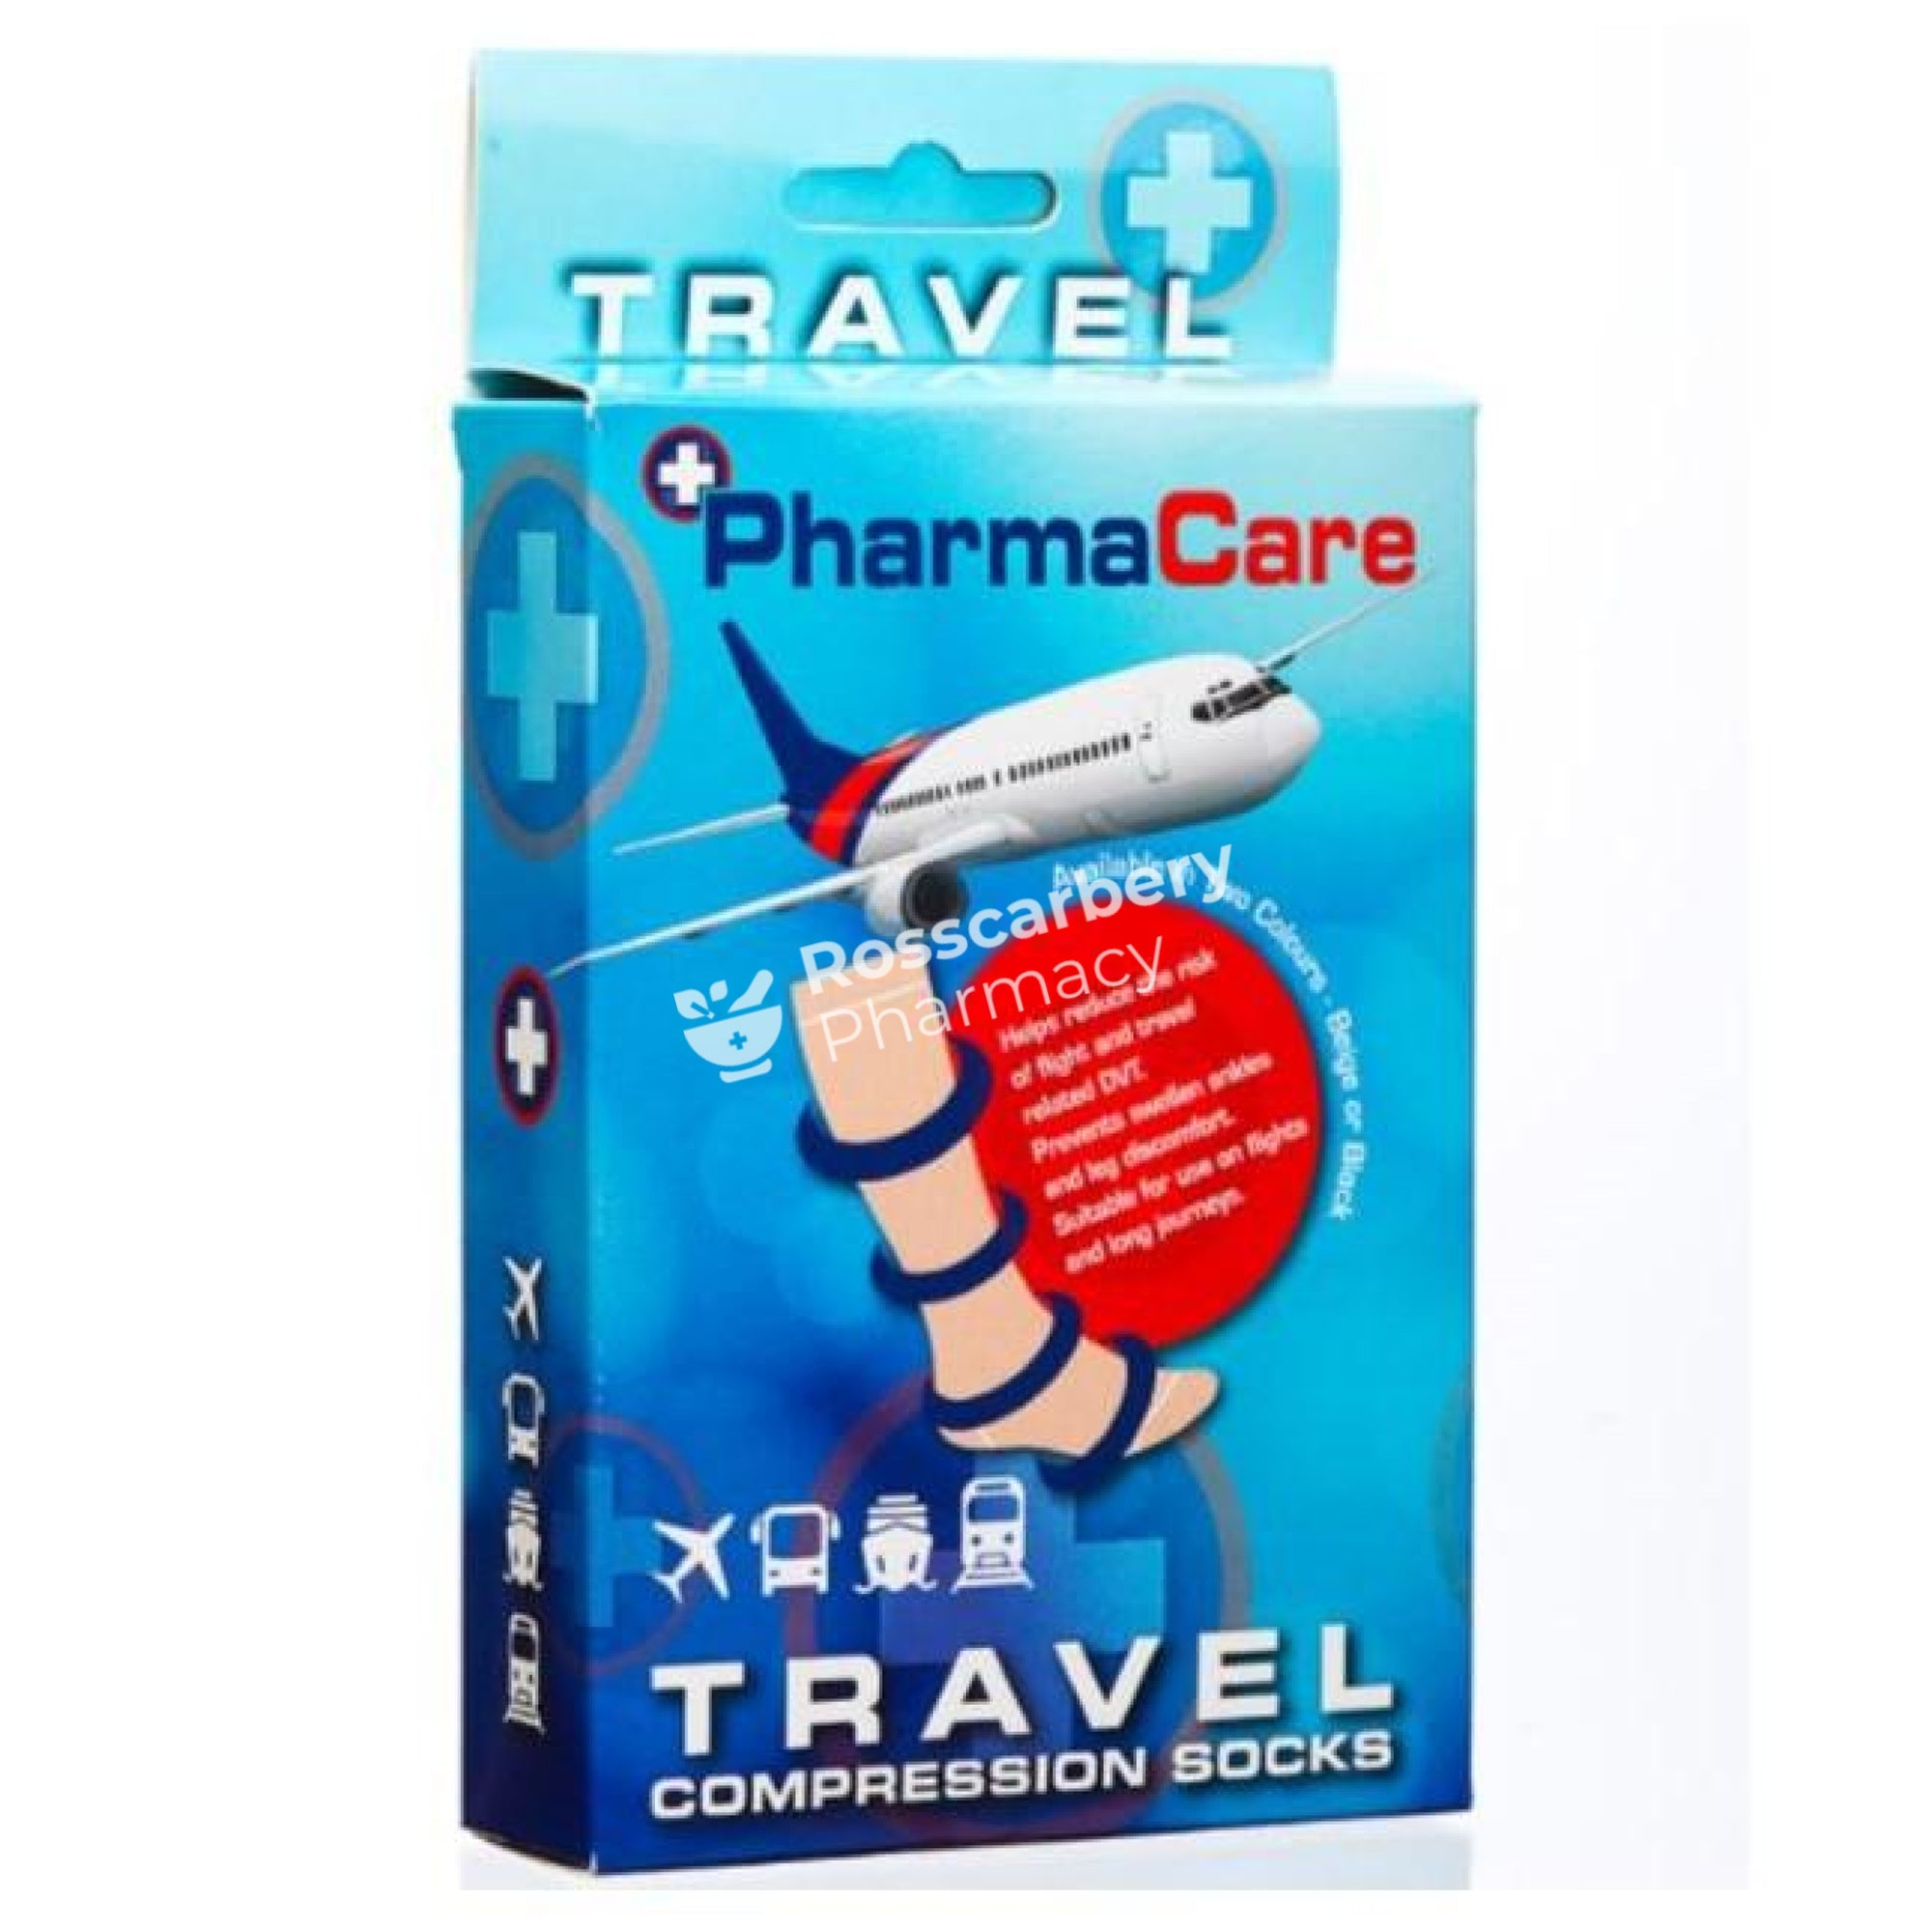 Pharmacare Travel Compression Socks 1 Pair - Beige Bandages Dressings & Plasters